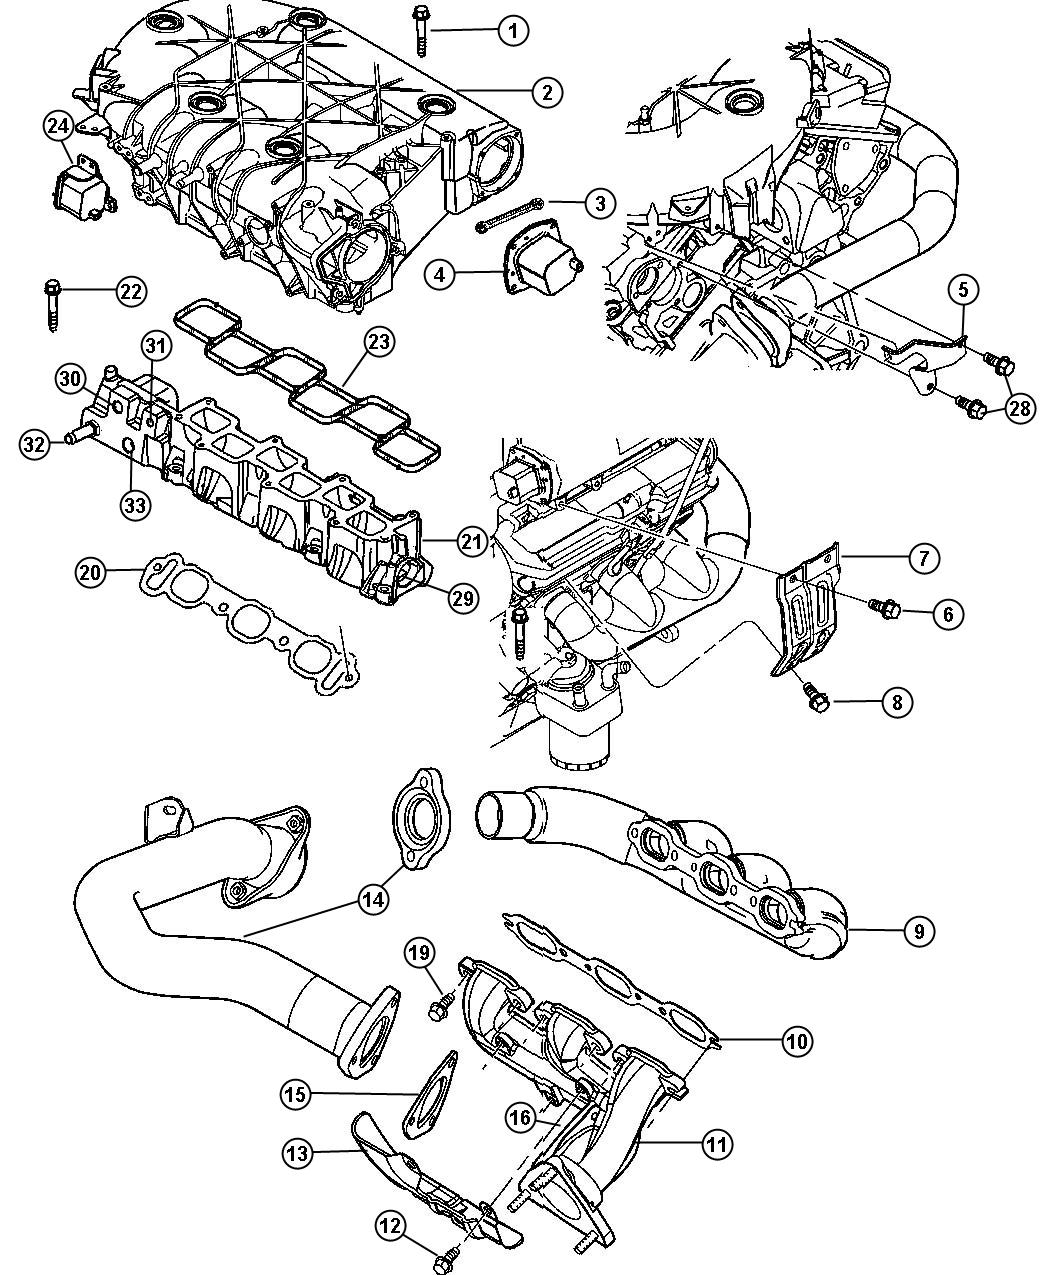 2007 saturn aura spark plugs diagram